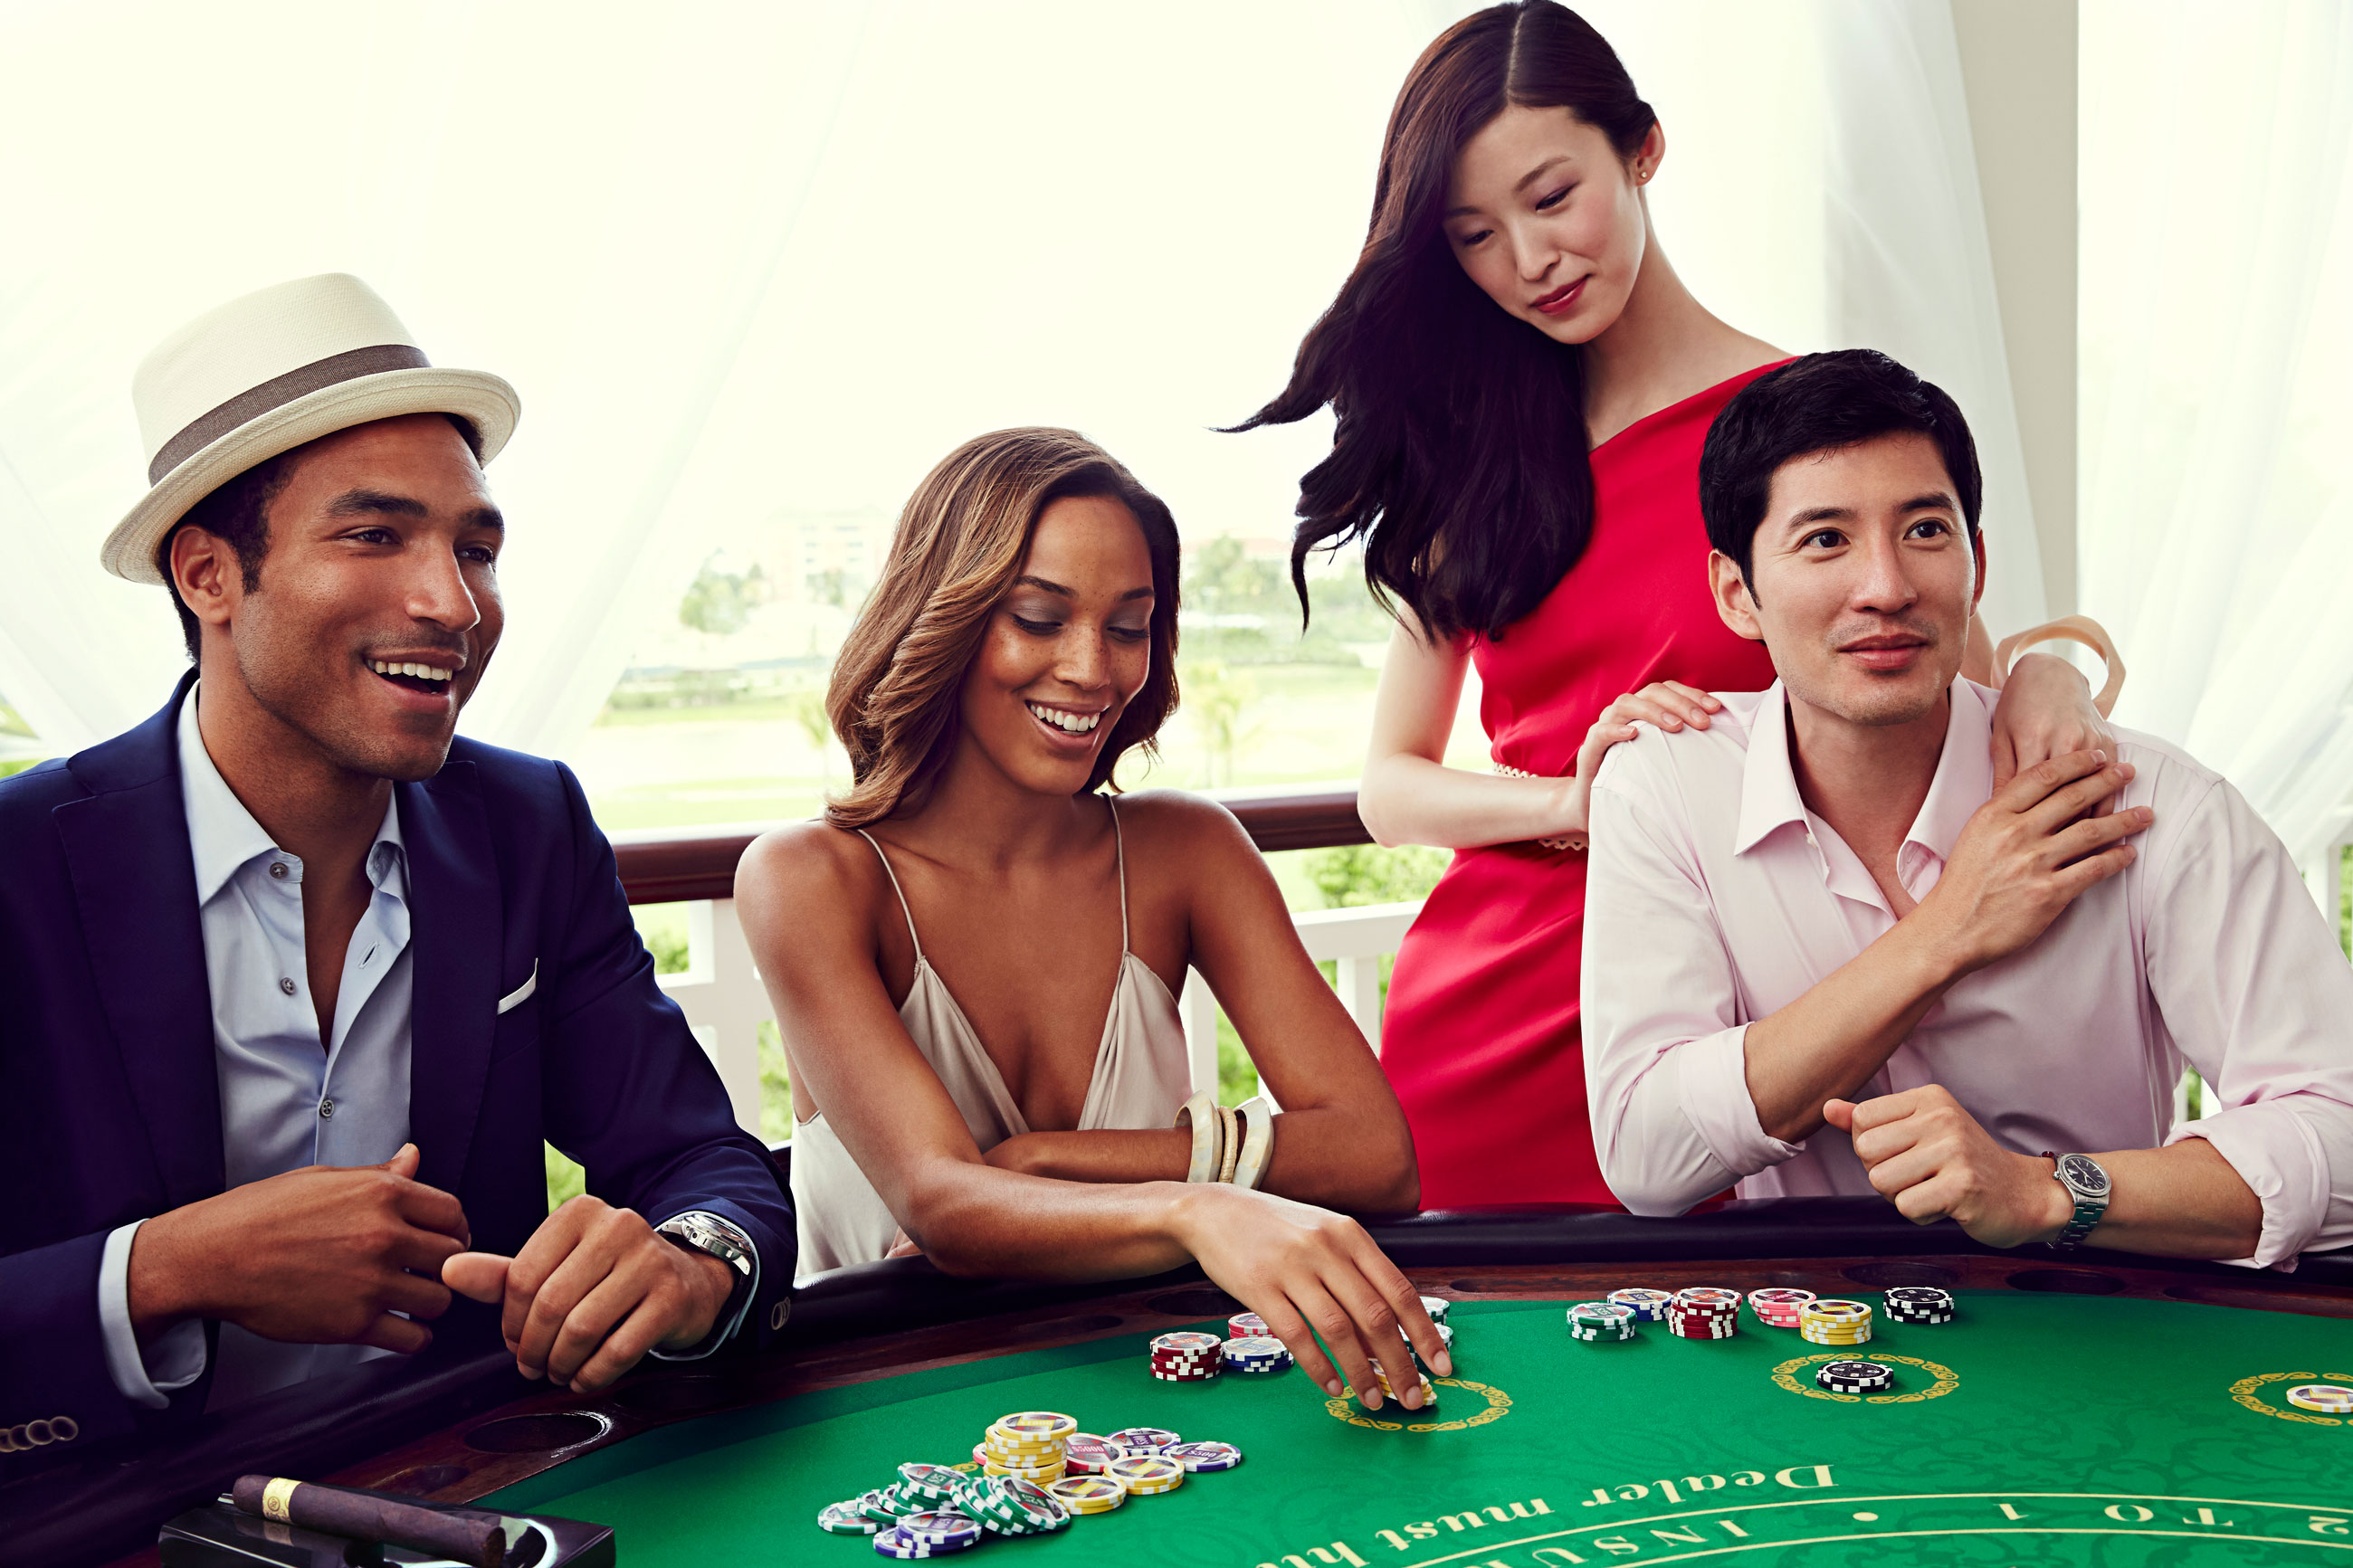 Group playing blackjack